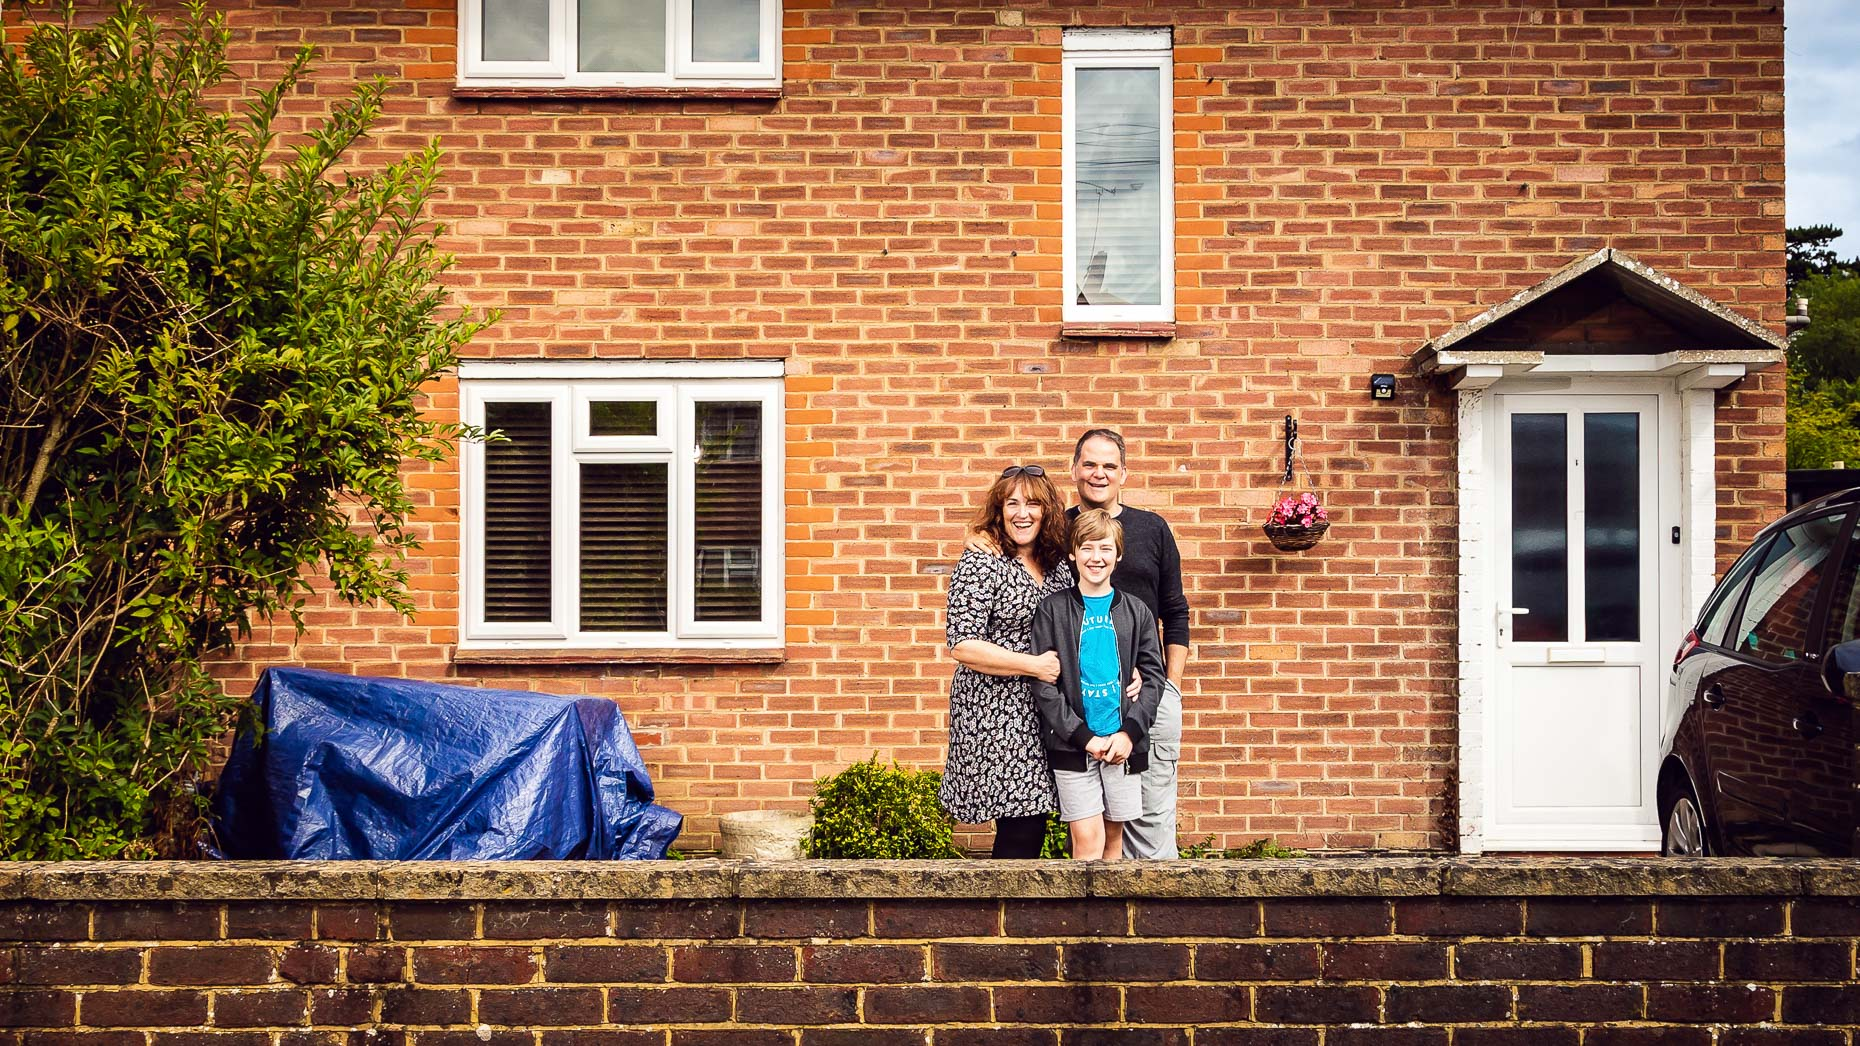 Ashtead Doorstep Portraits 69